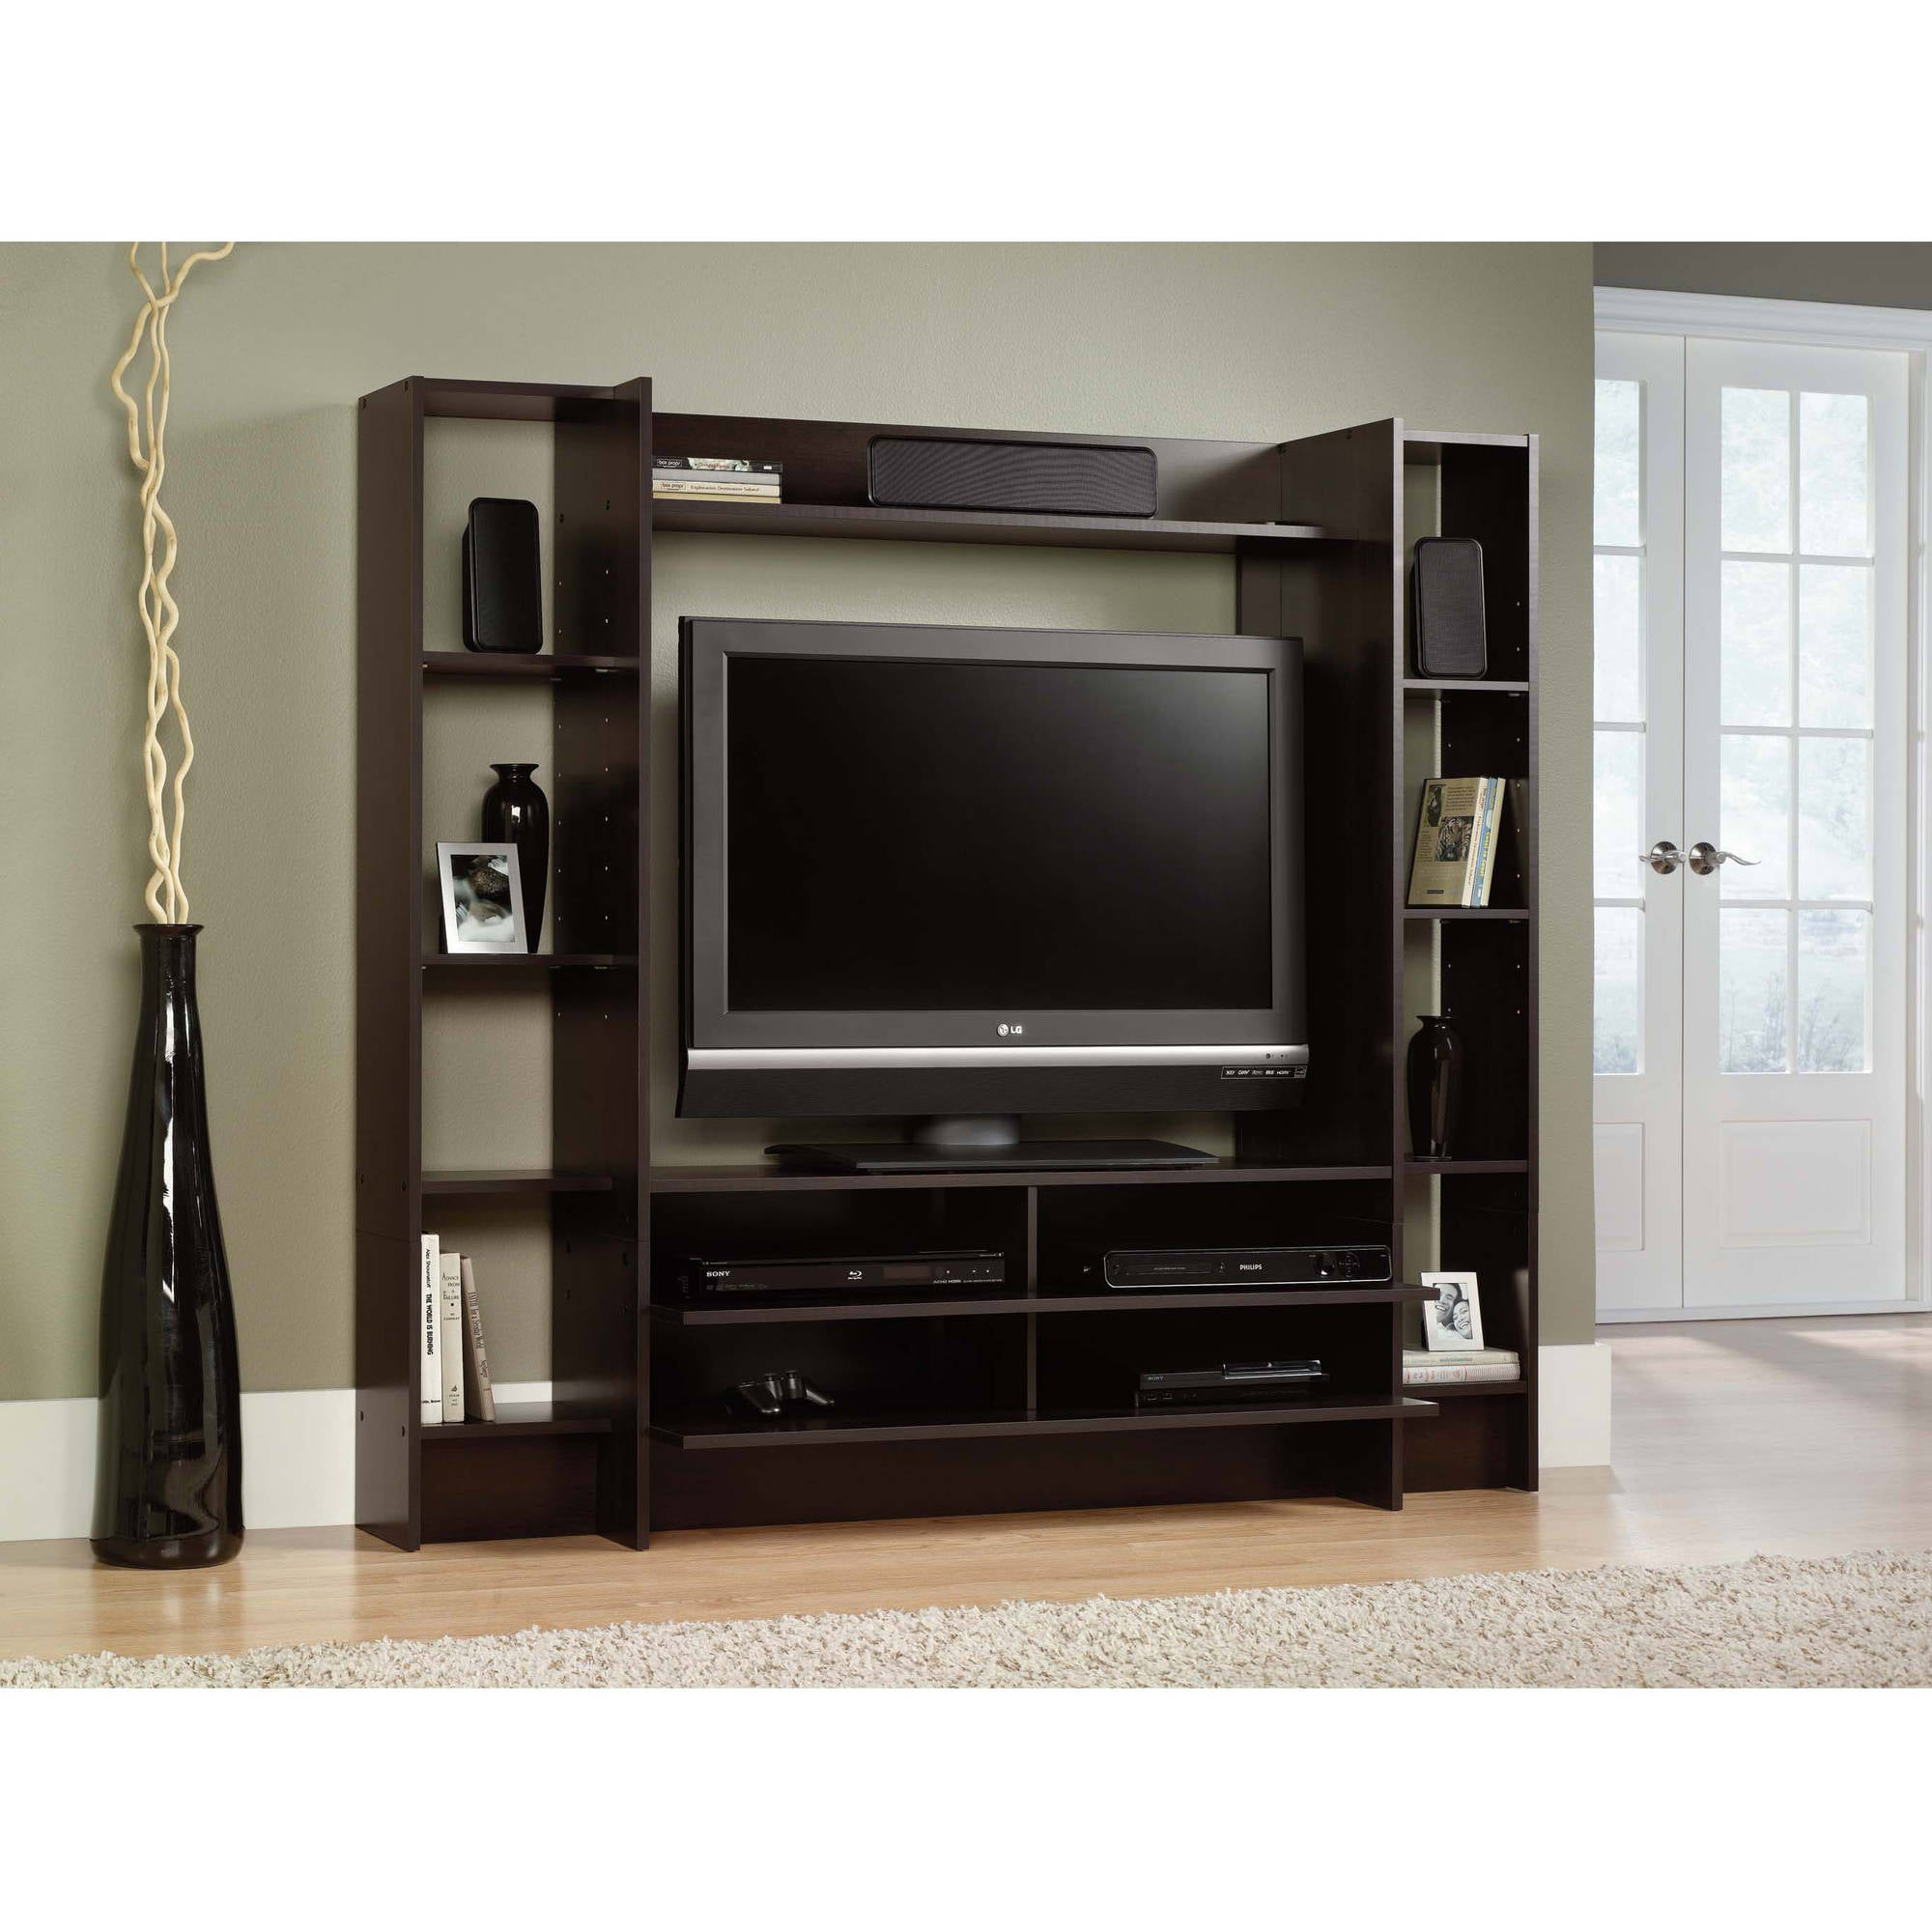 Entertainment Centers - Walmart.com